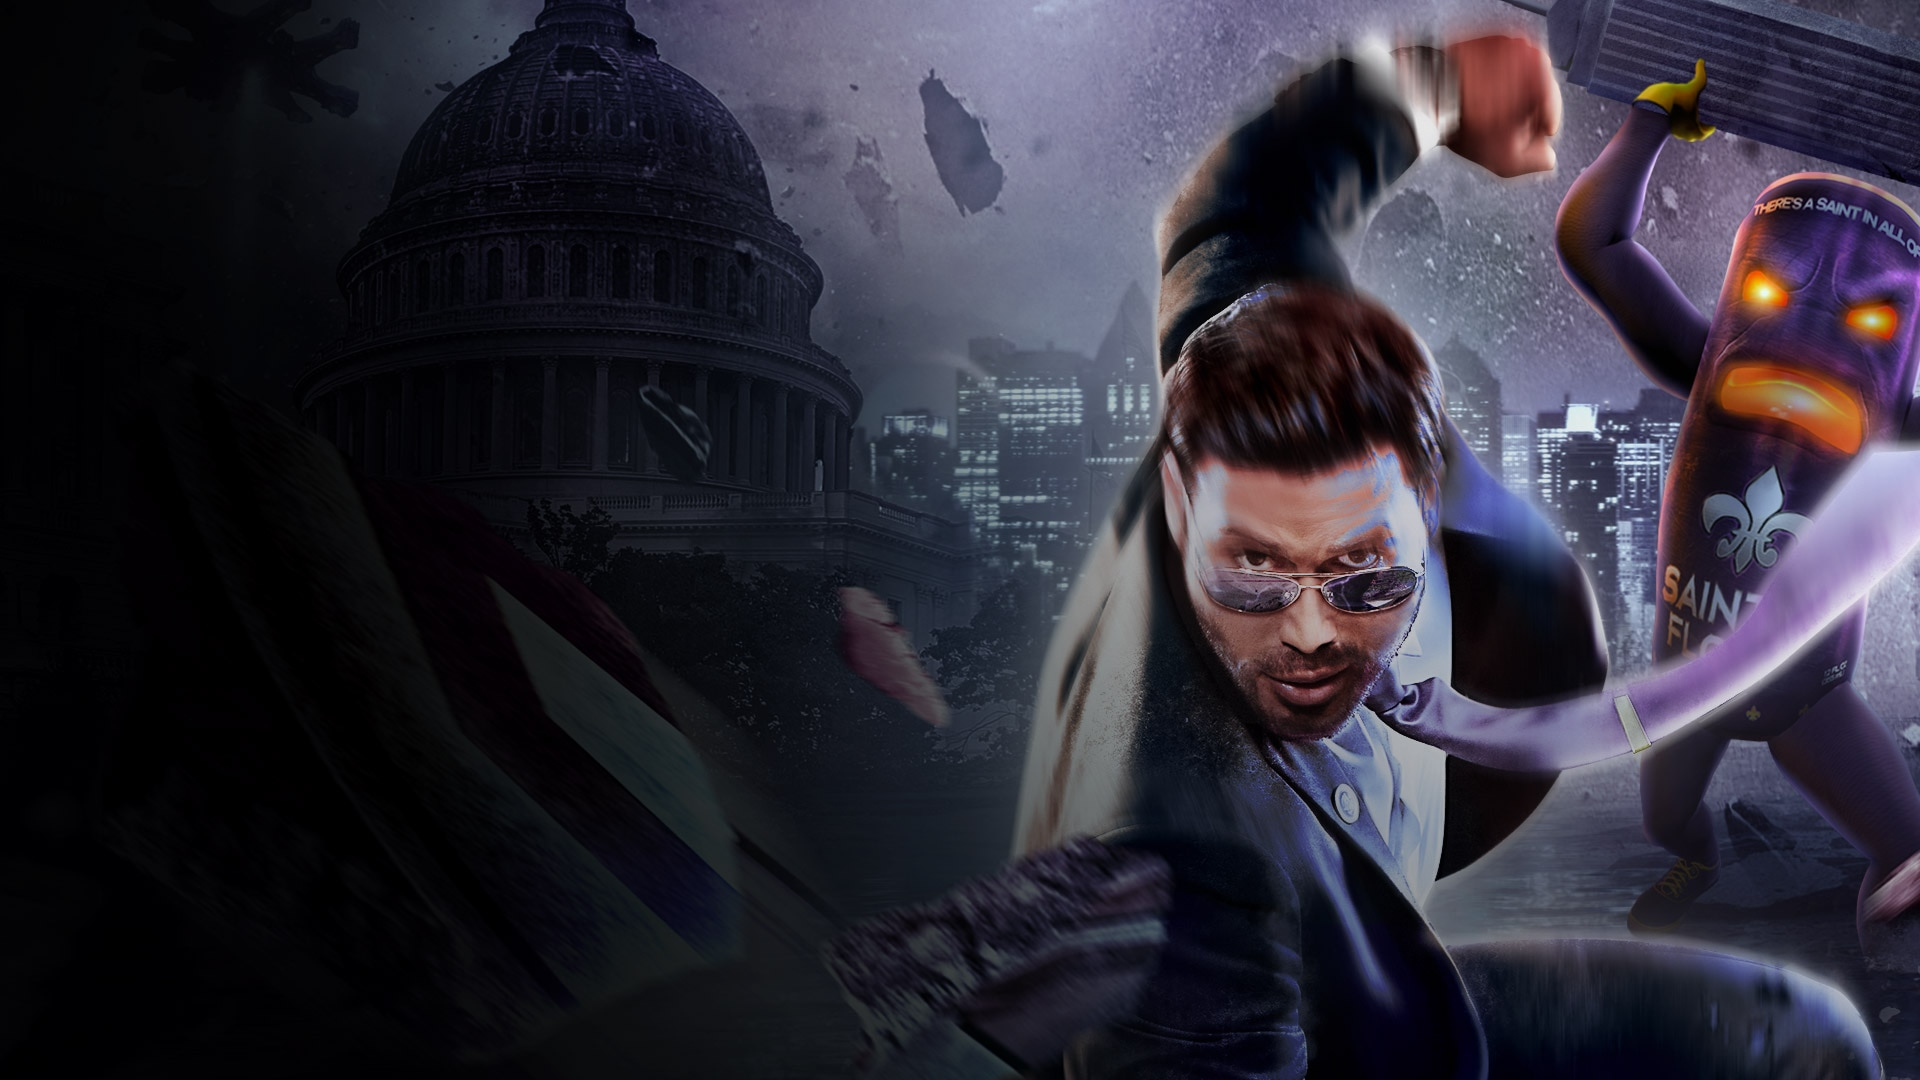 Saints Row IV: Re-Elected (English Ver.)